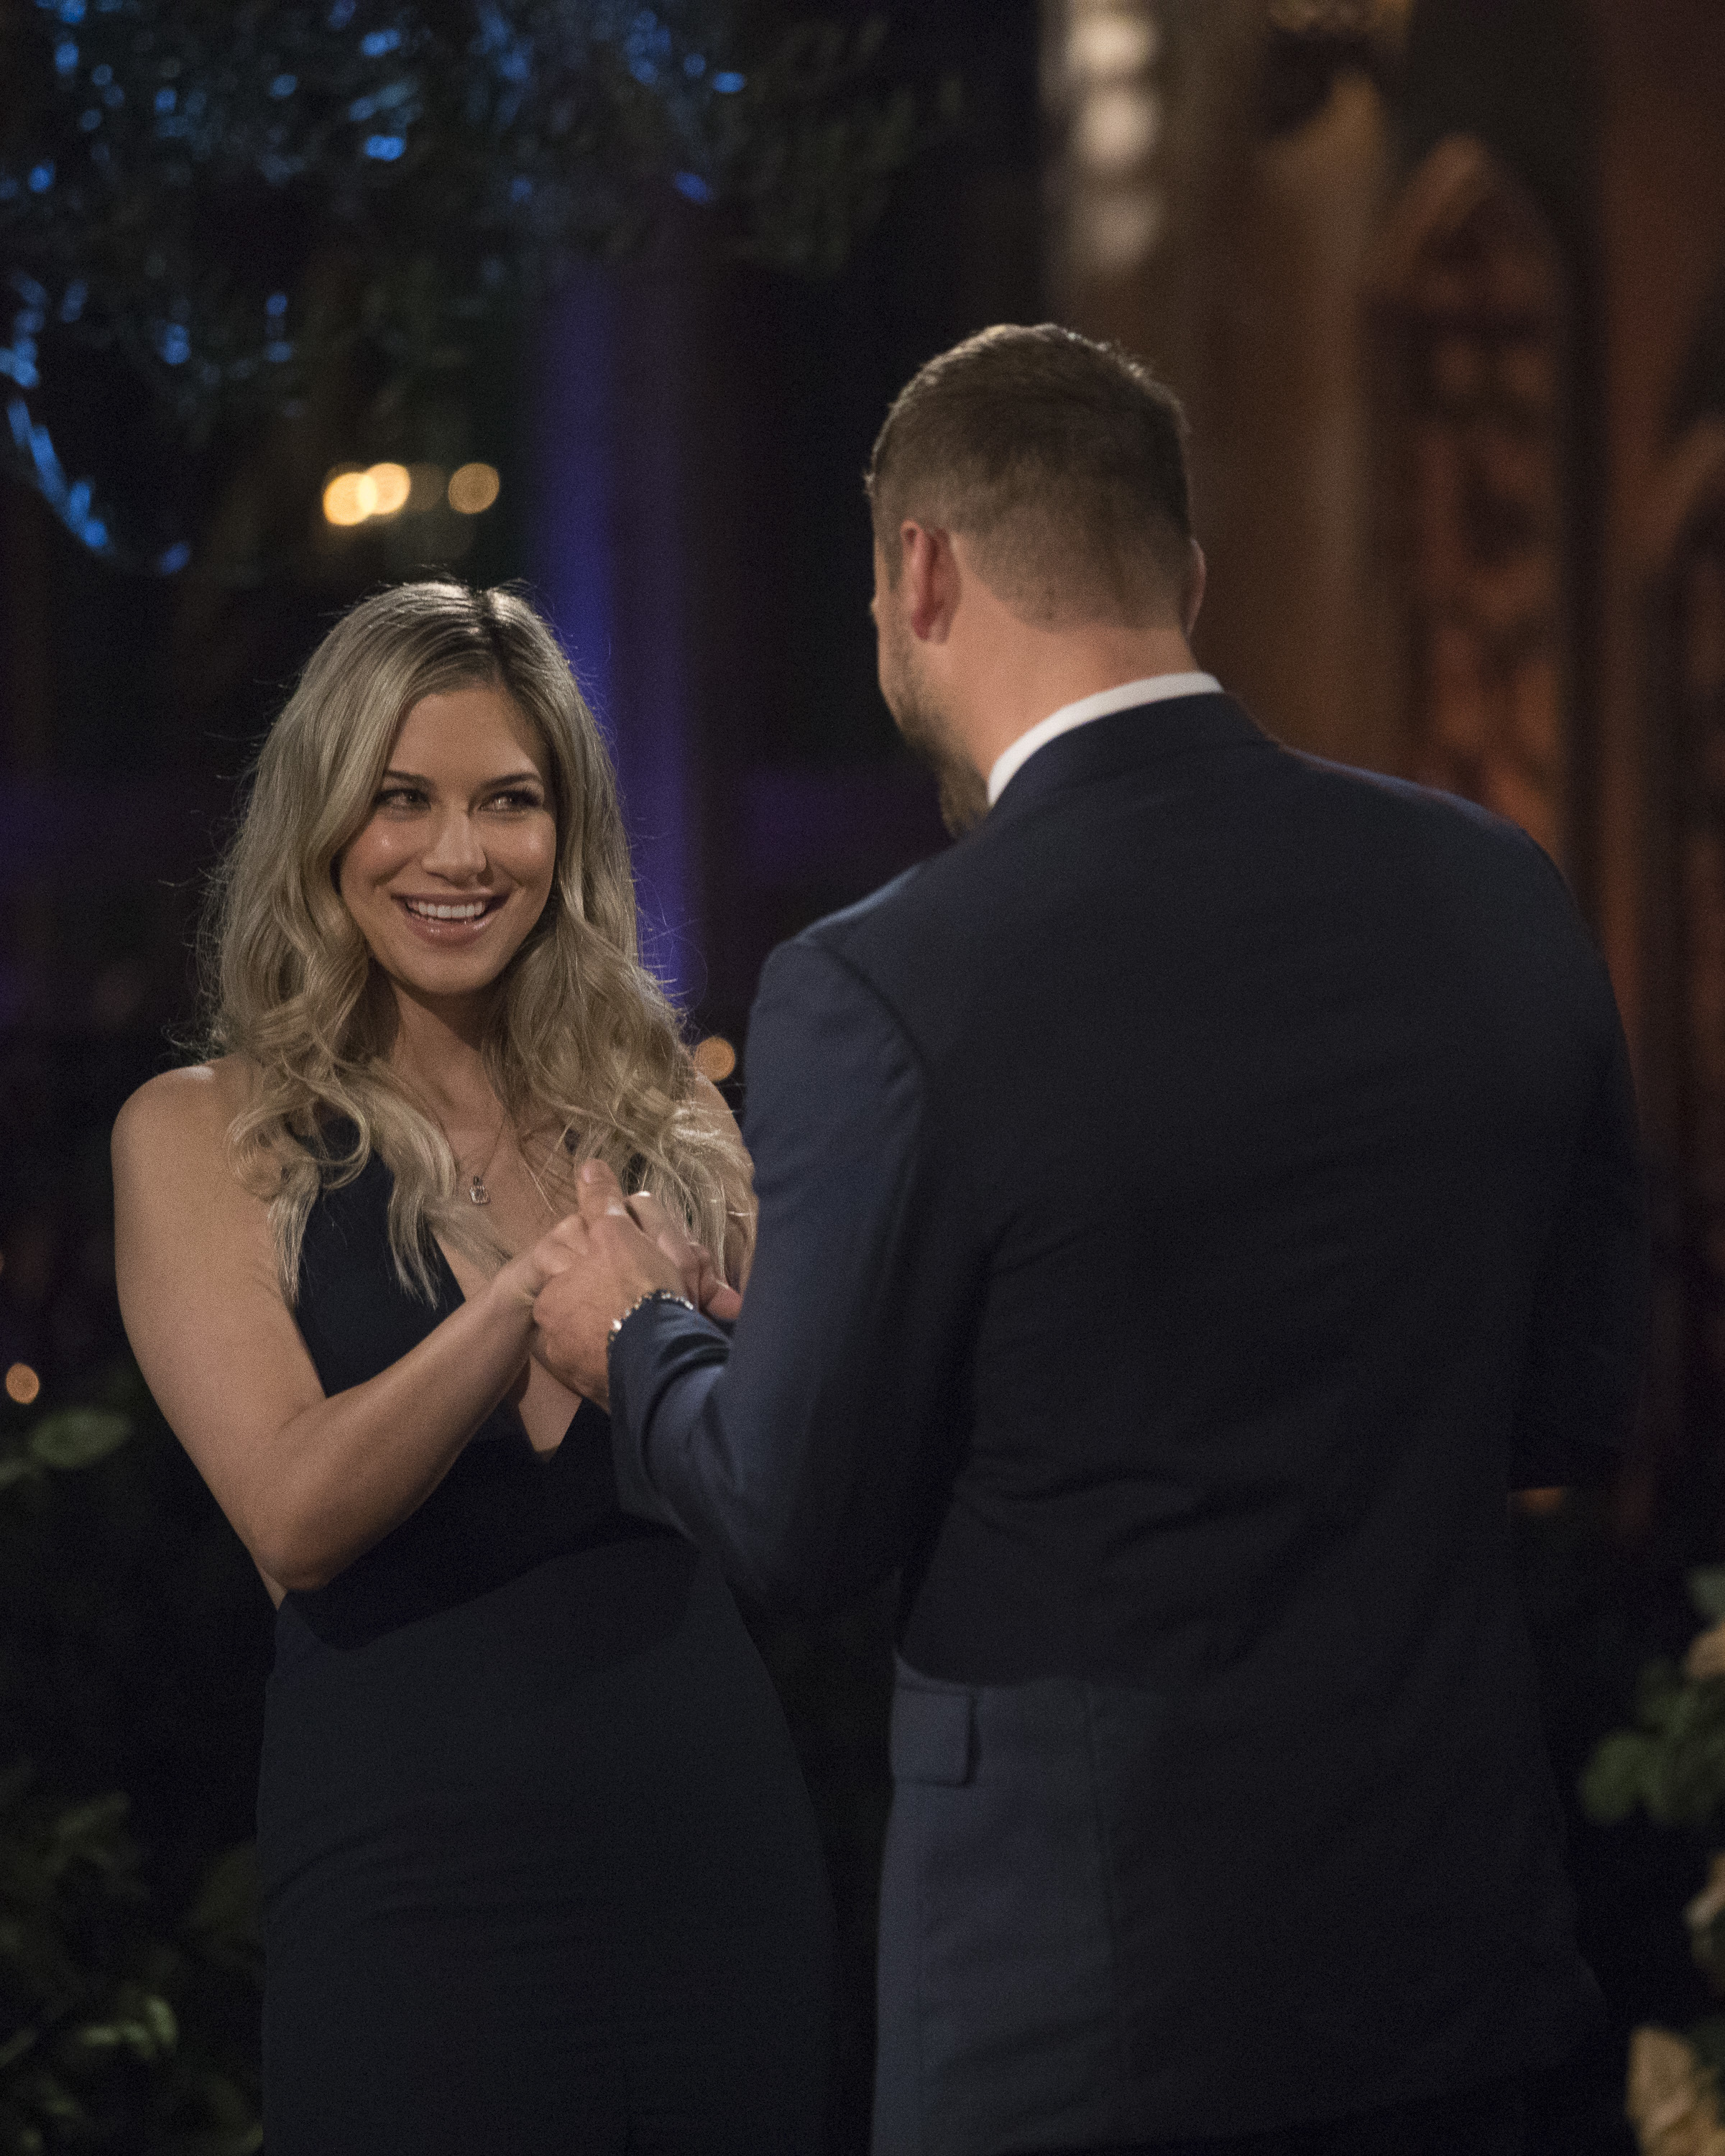 Bachelor 23 - Nina Bartula - Discussion - *Sleuthing Spoilers* 150365_1974